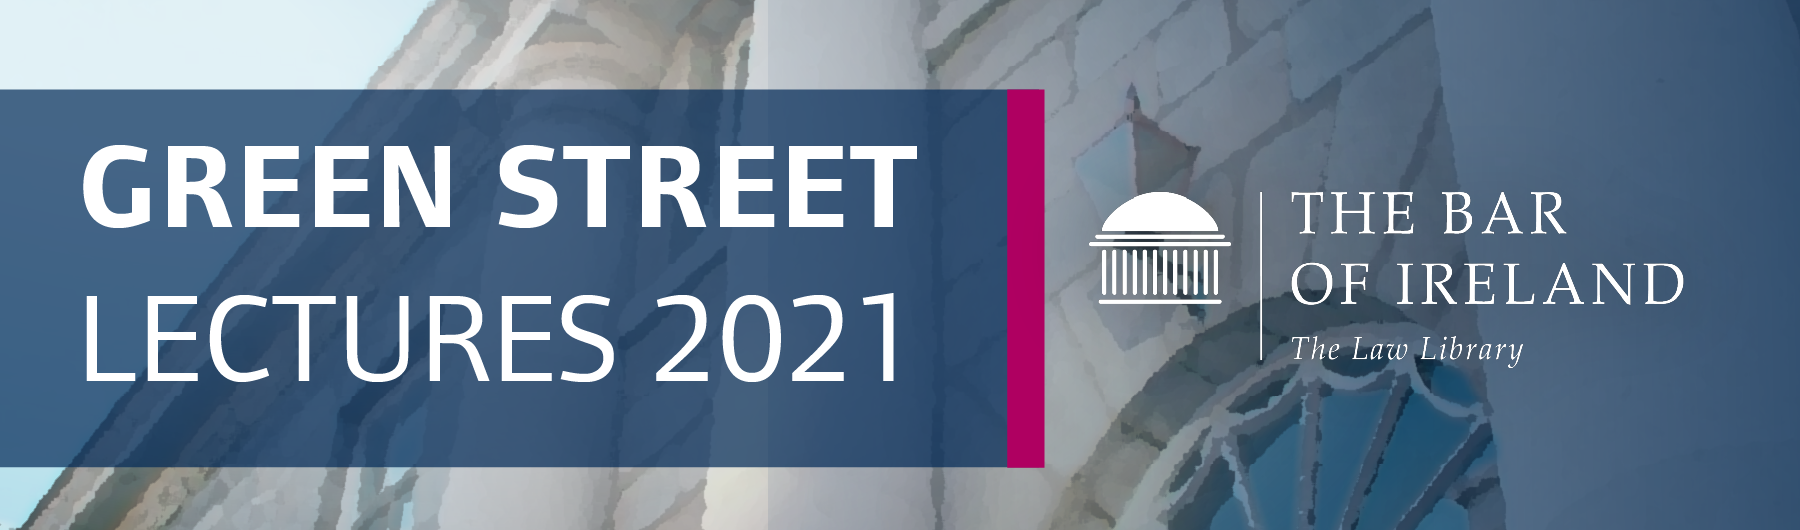 Green Street Lectures 2021